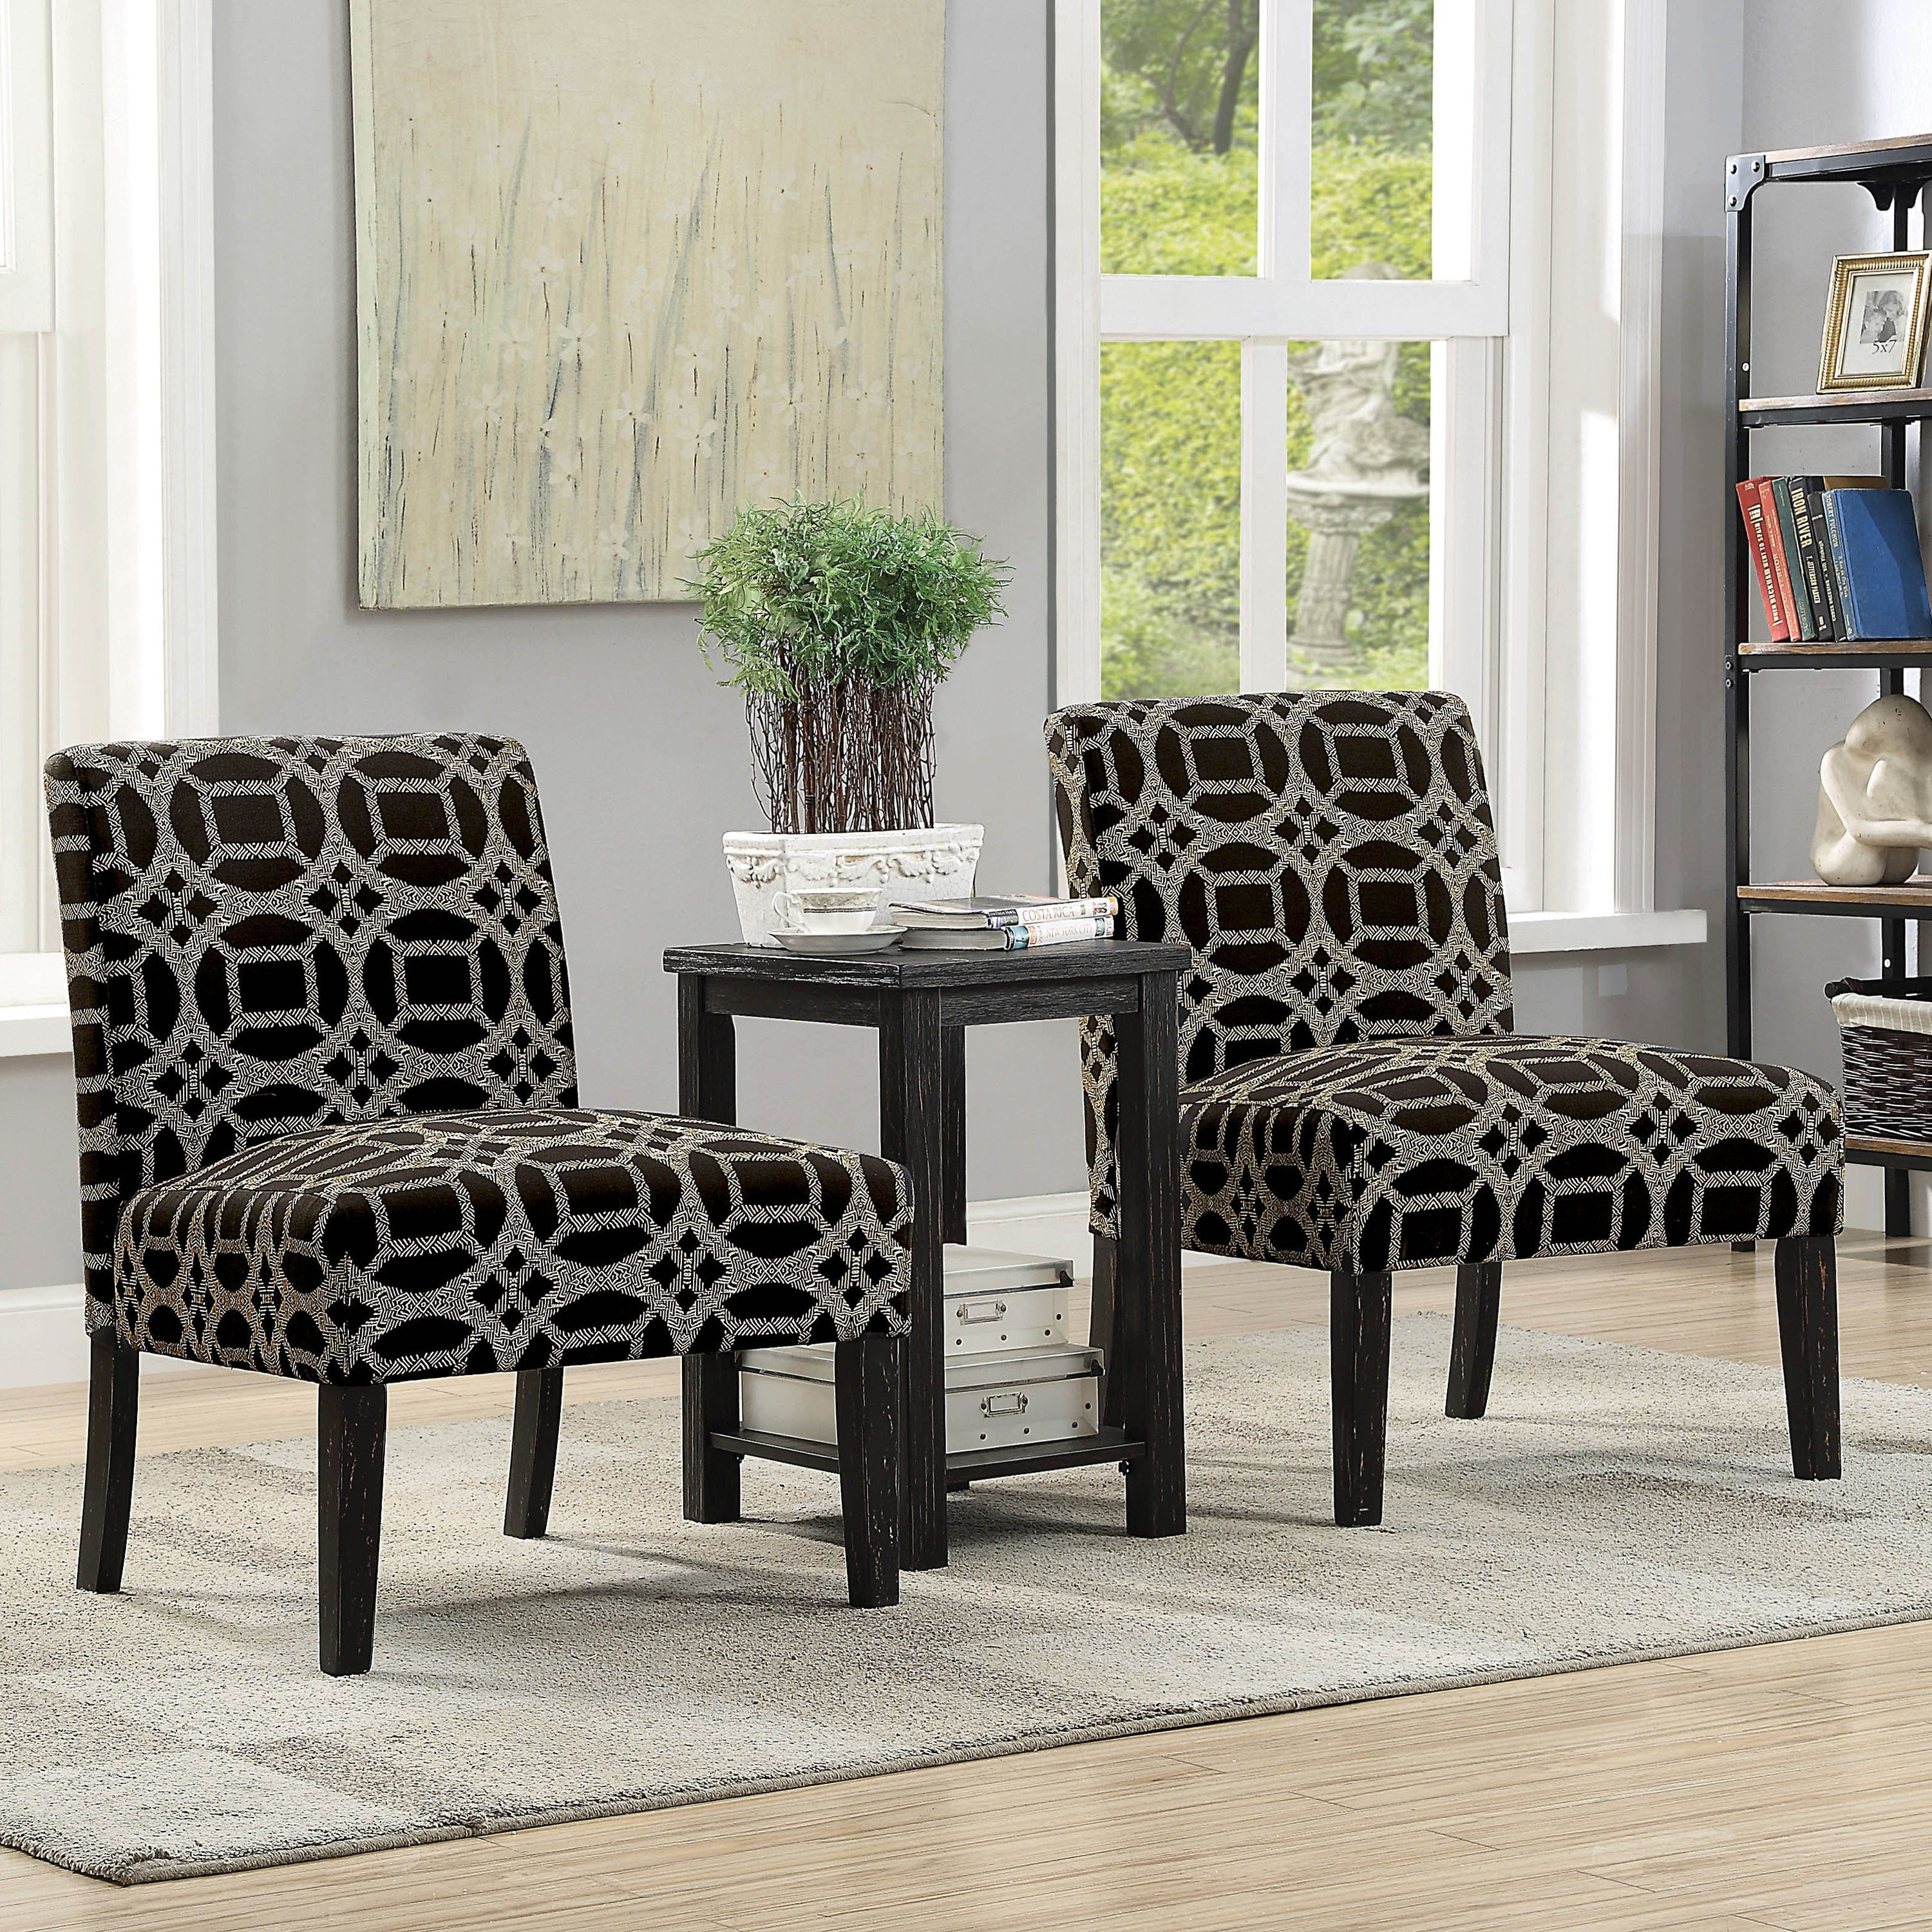 furniture america braden transitional piece accent chairs and table set chair free shipping today skinny entrance battery operated wall clock side over sofa arm black iron coffee